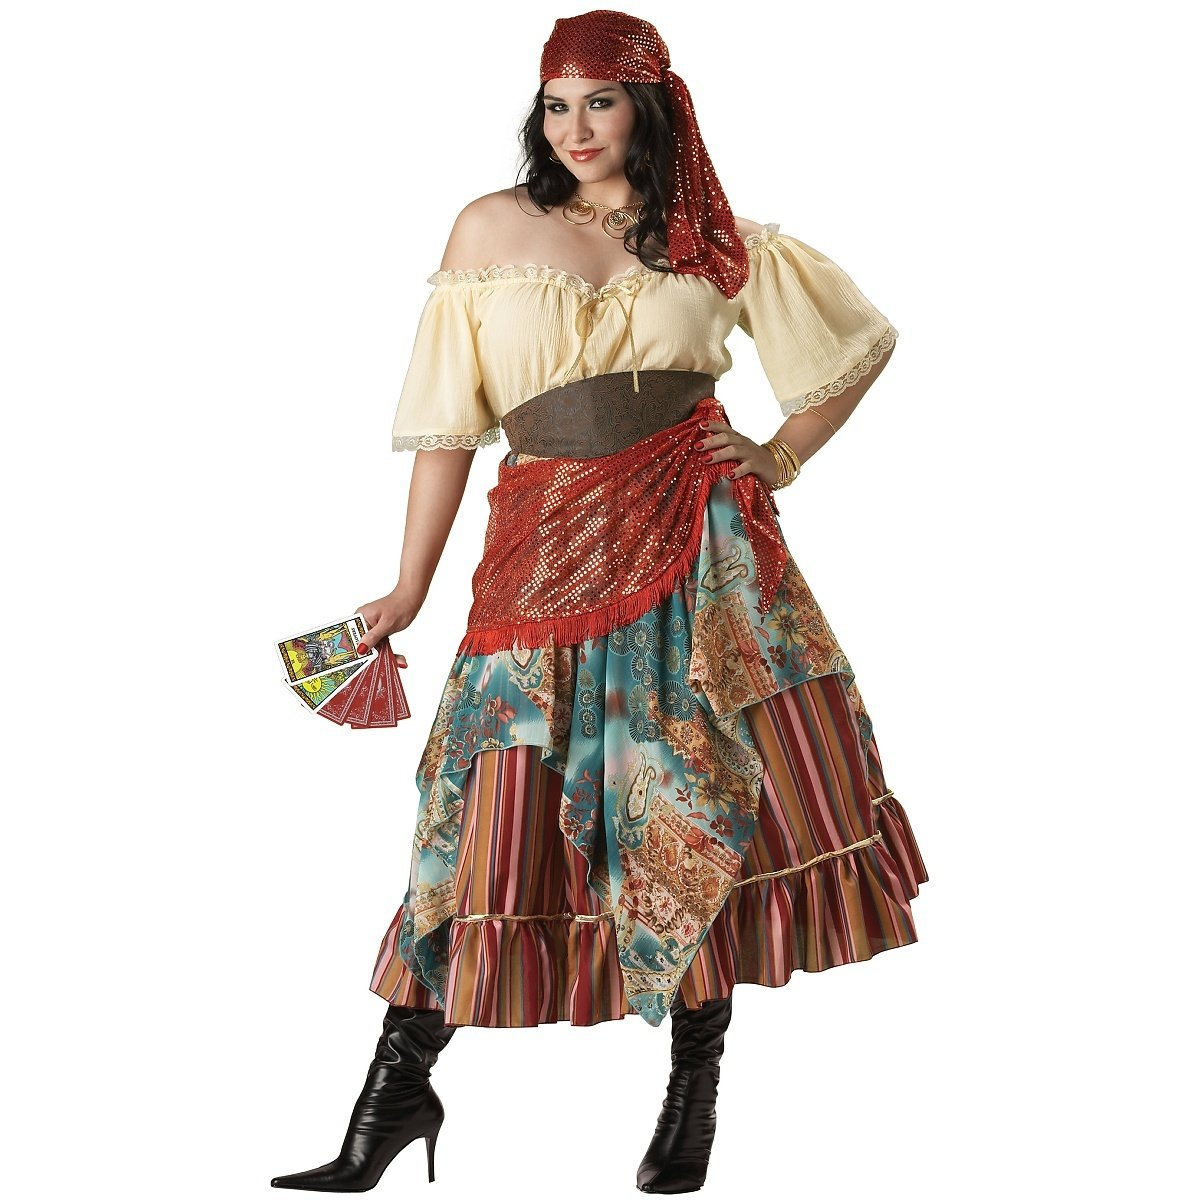 InCharacter Costumes Women's Plus Size Fortune Teller Costume Tan/Red/Blue, XX-Large